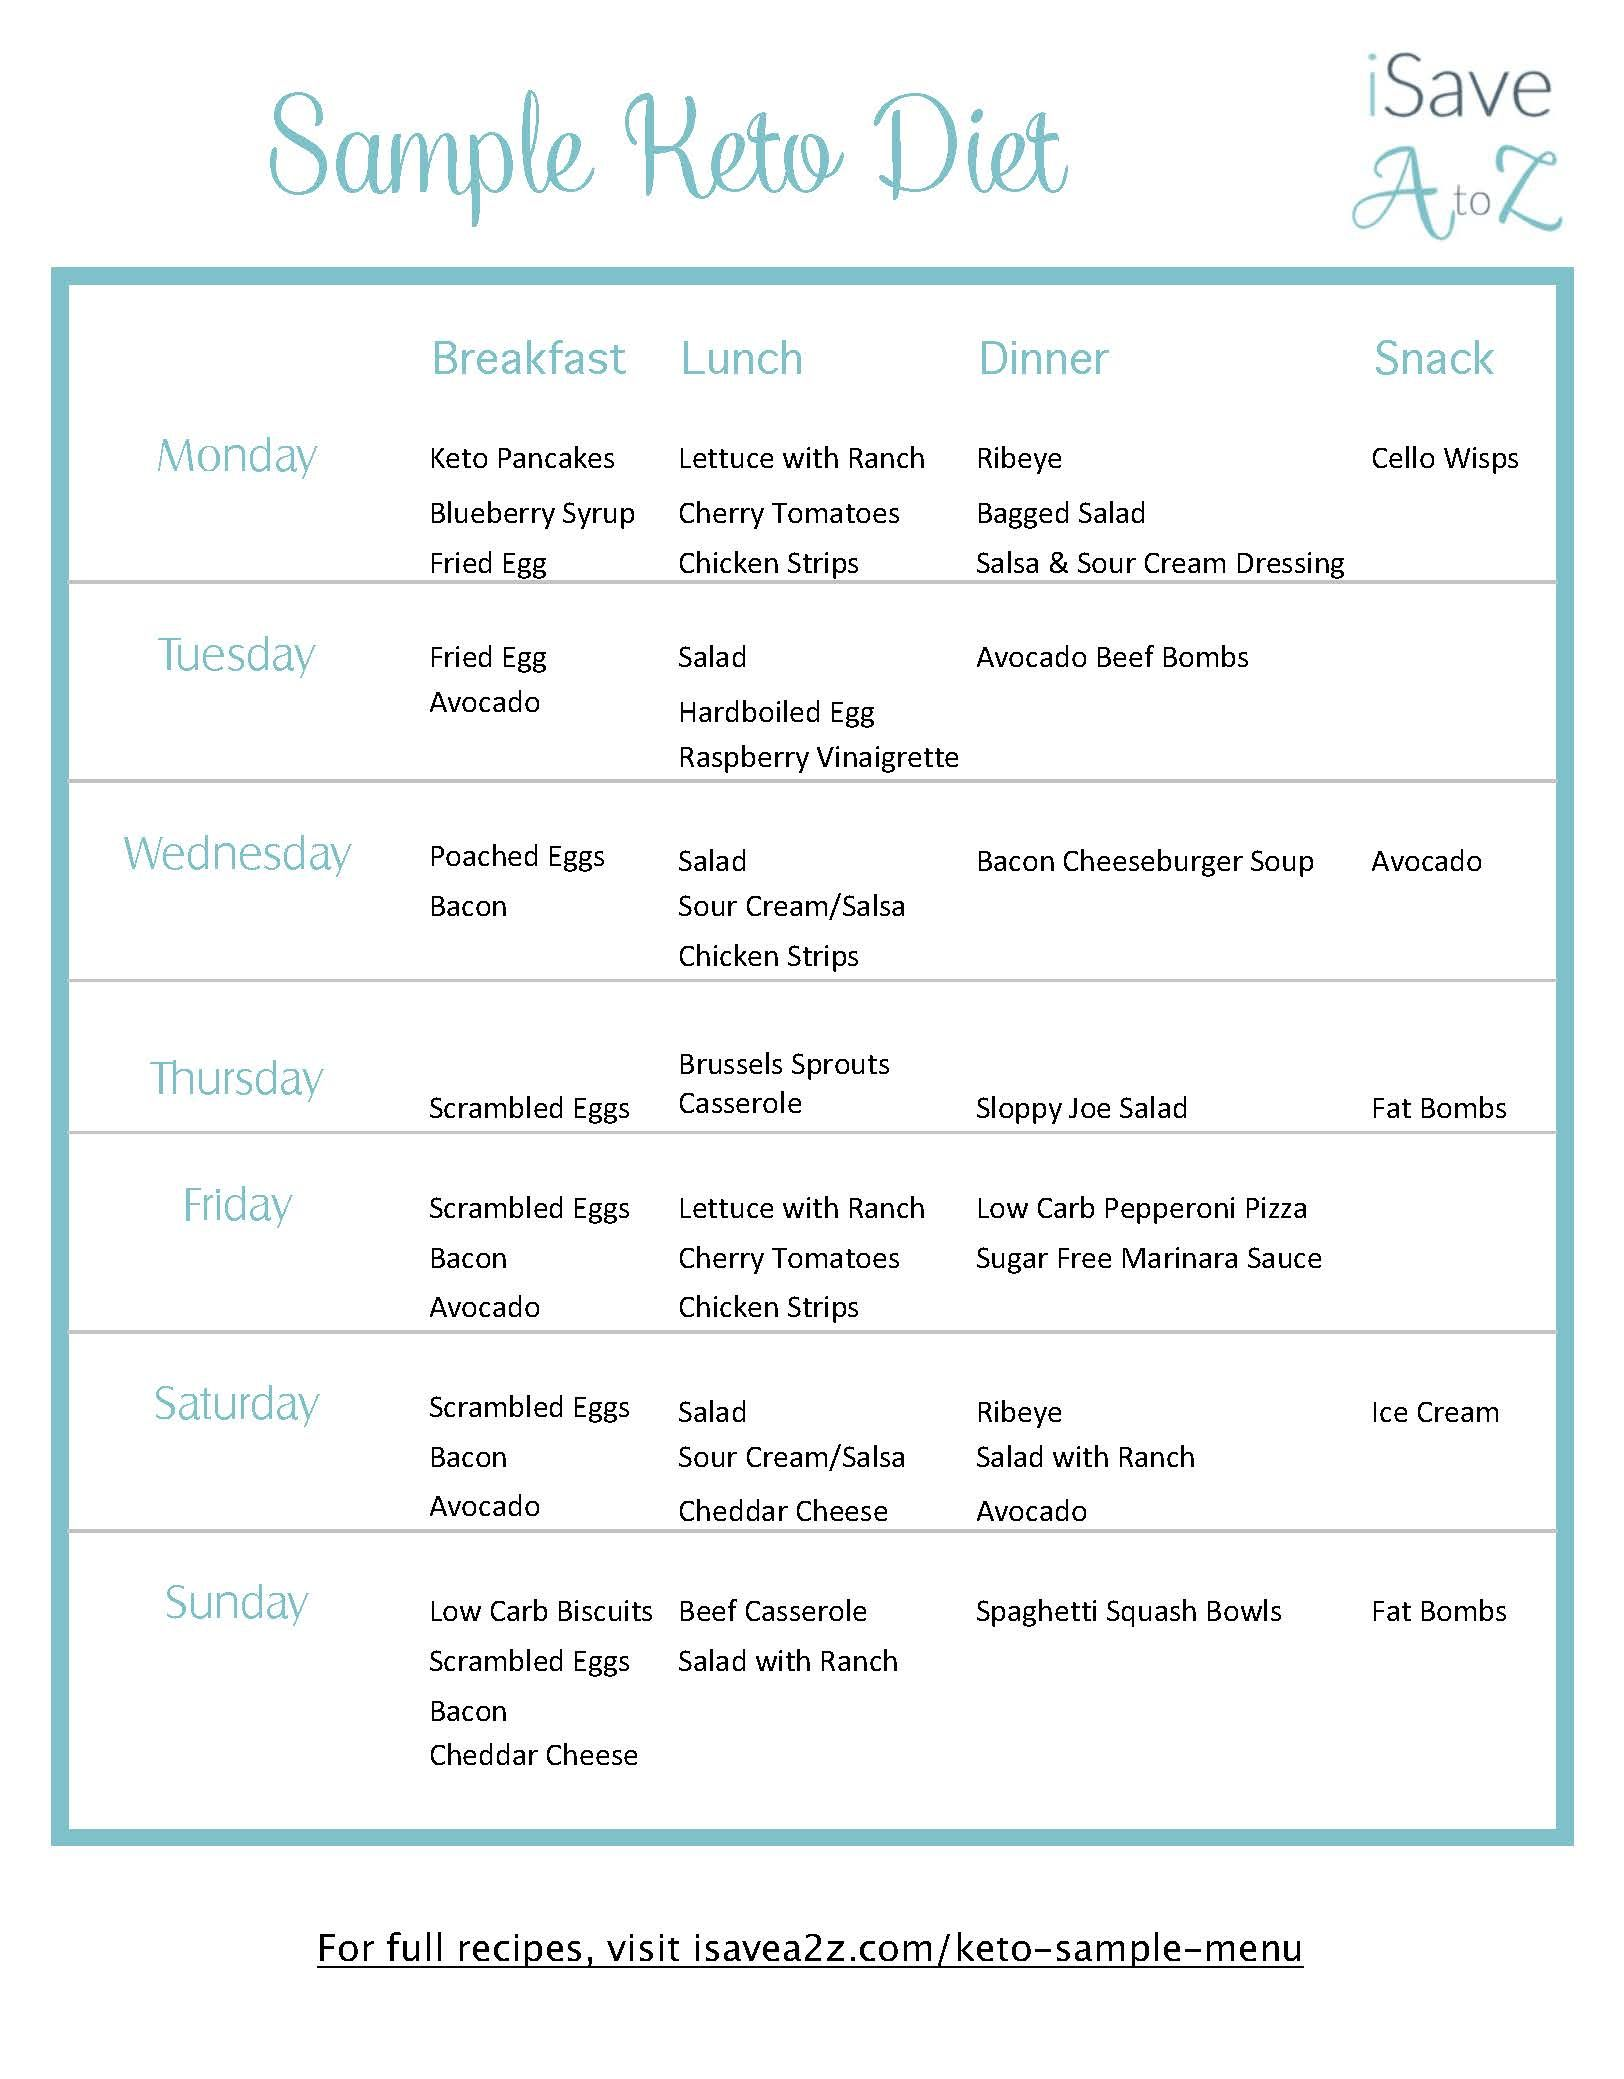 Grab this printable 7 day Keto Sample Menu plan | Sample menu, Keto and Menu planning